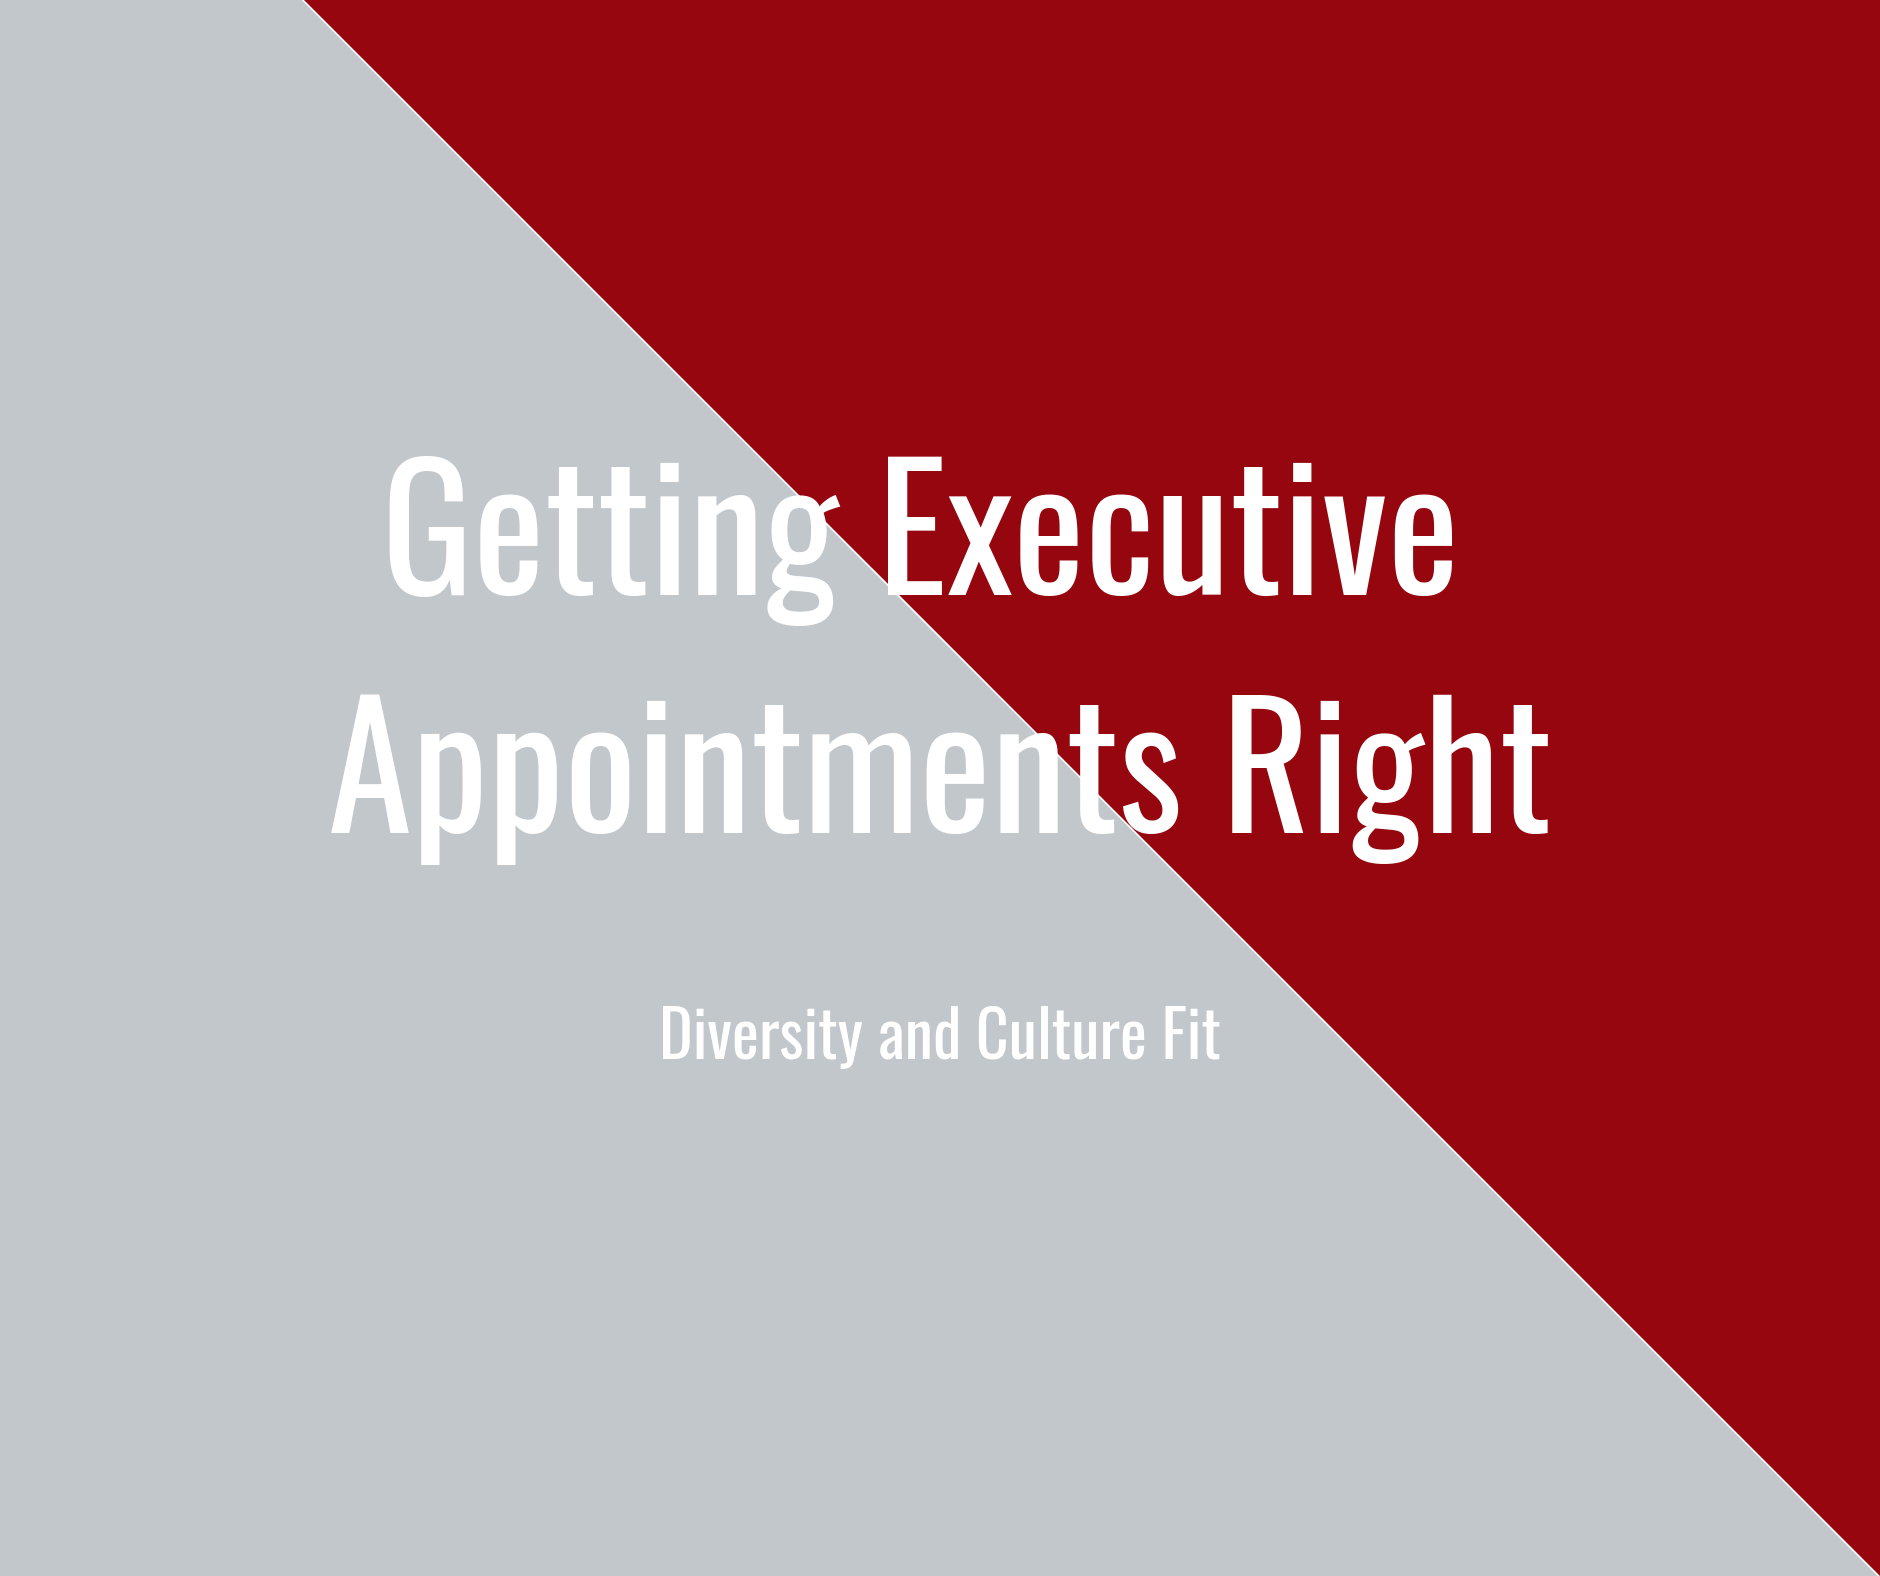 Getting Executive Appointments Right - Diversity and Culture Fit.png